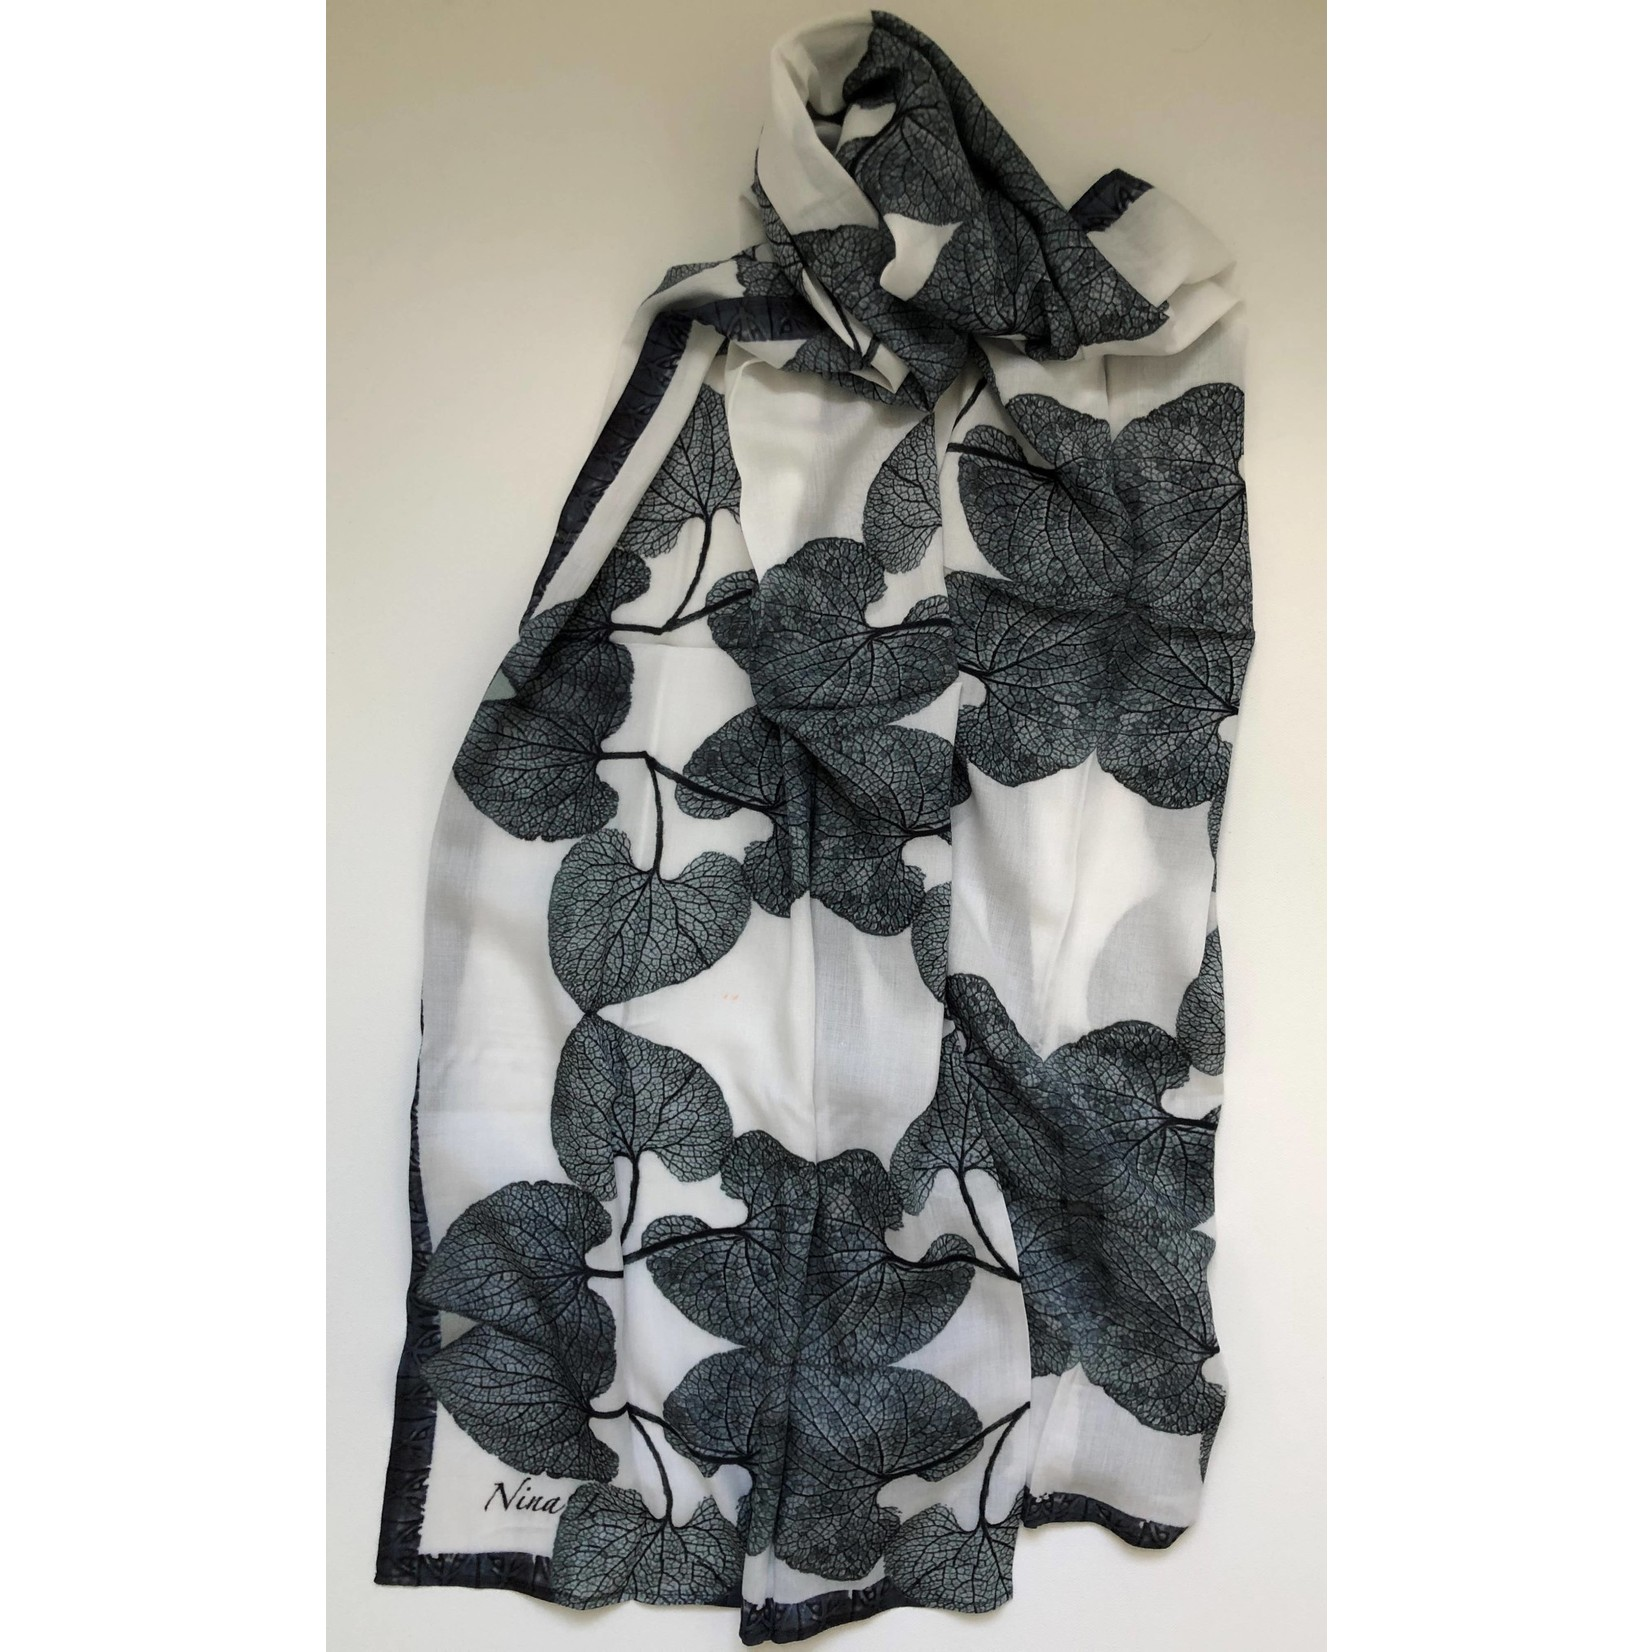 Nina J White Love (Forget Me Not) Cotton Scarf